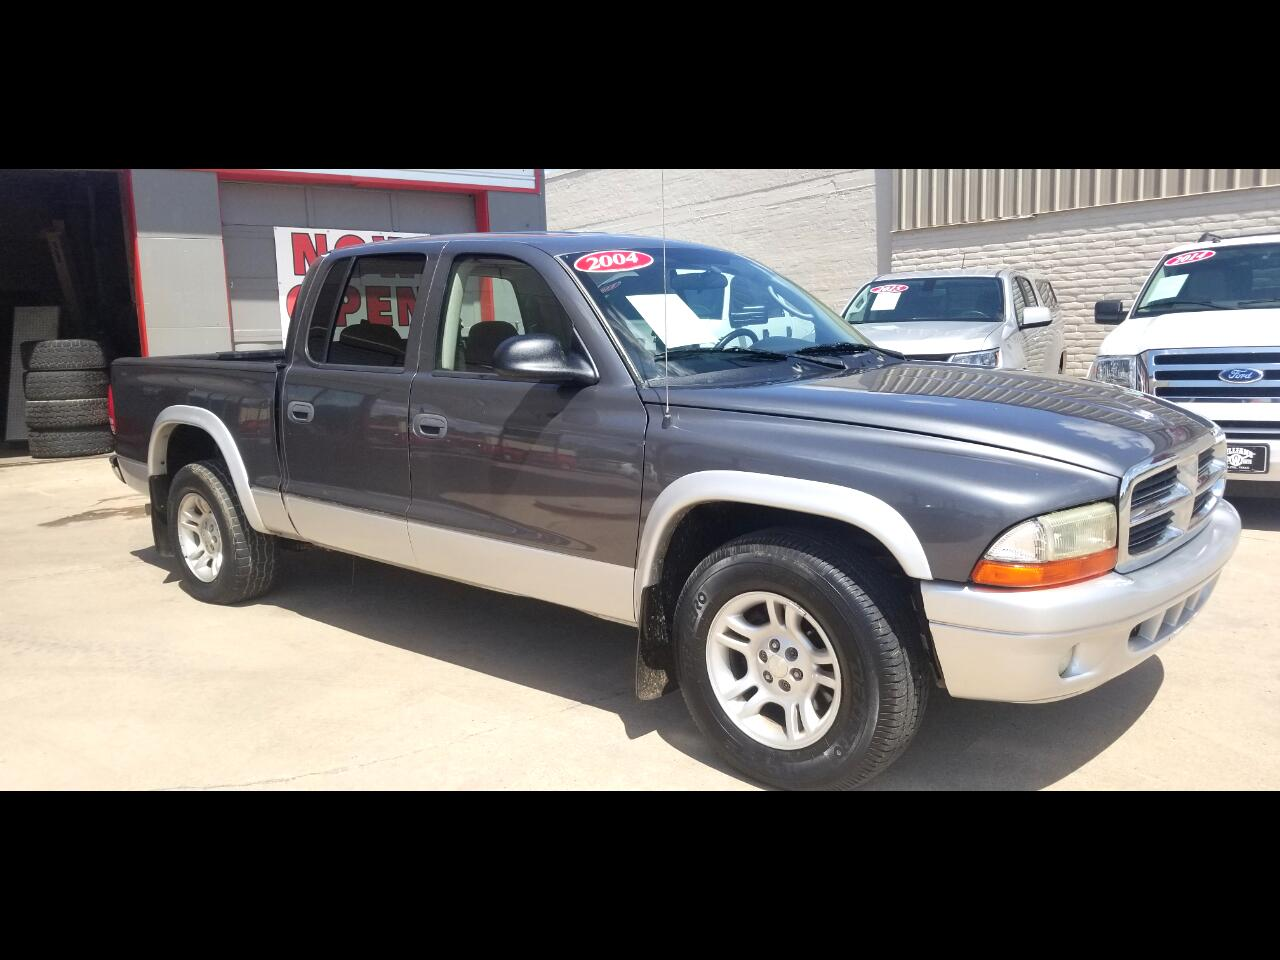 2004 Dodge Dakota Quad Cab SLT